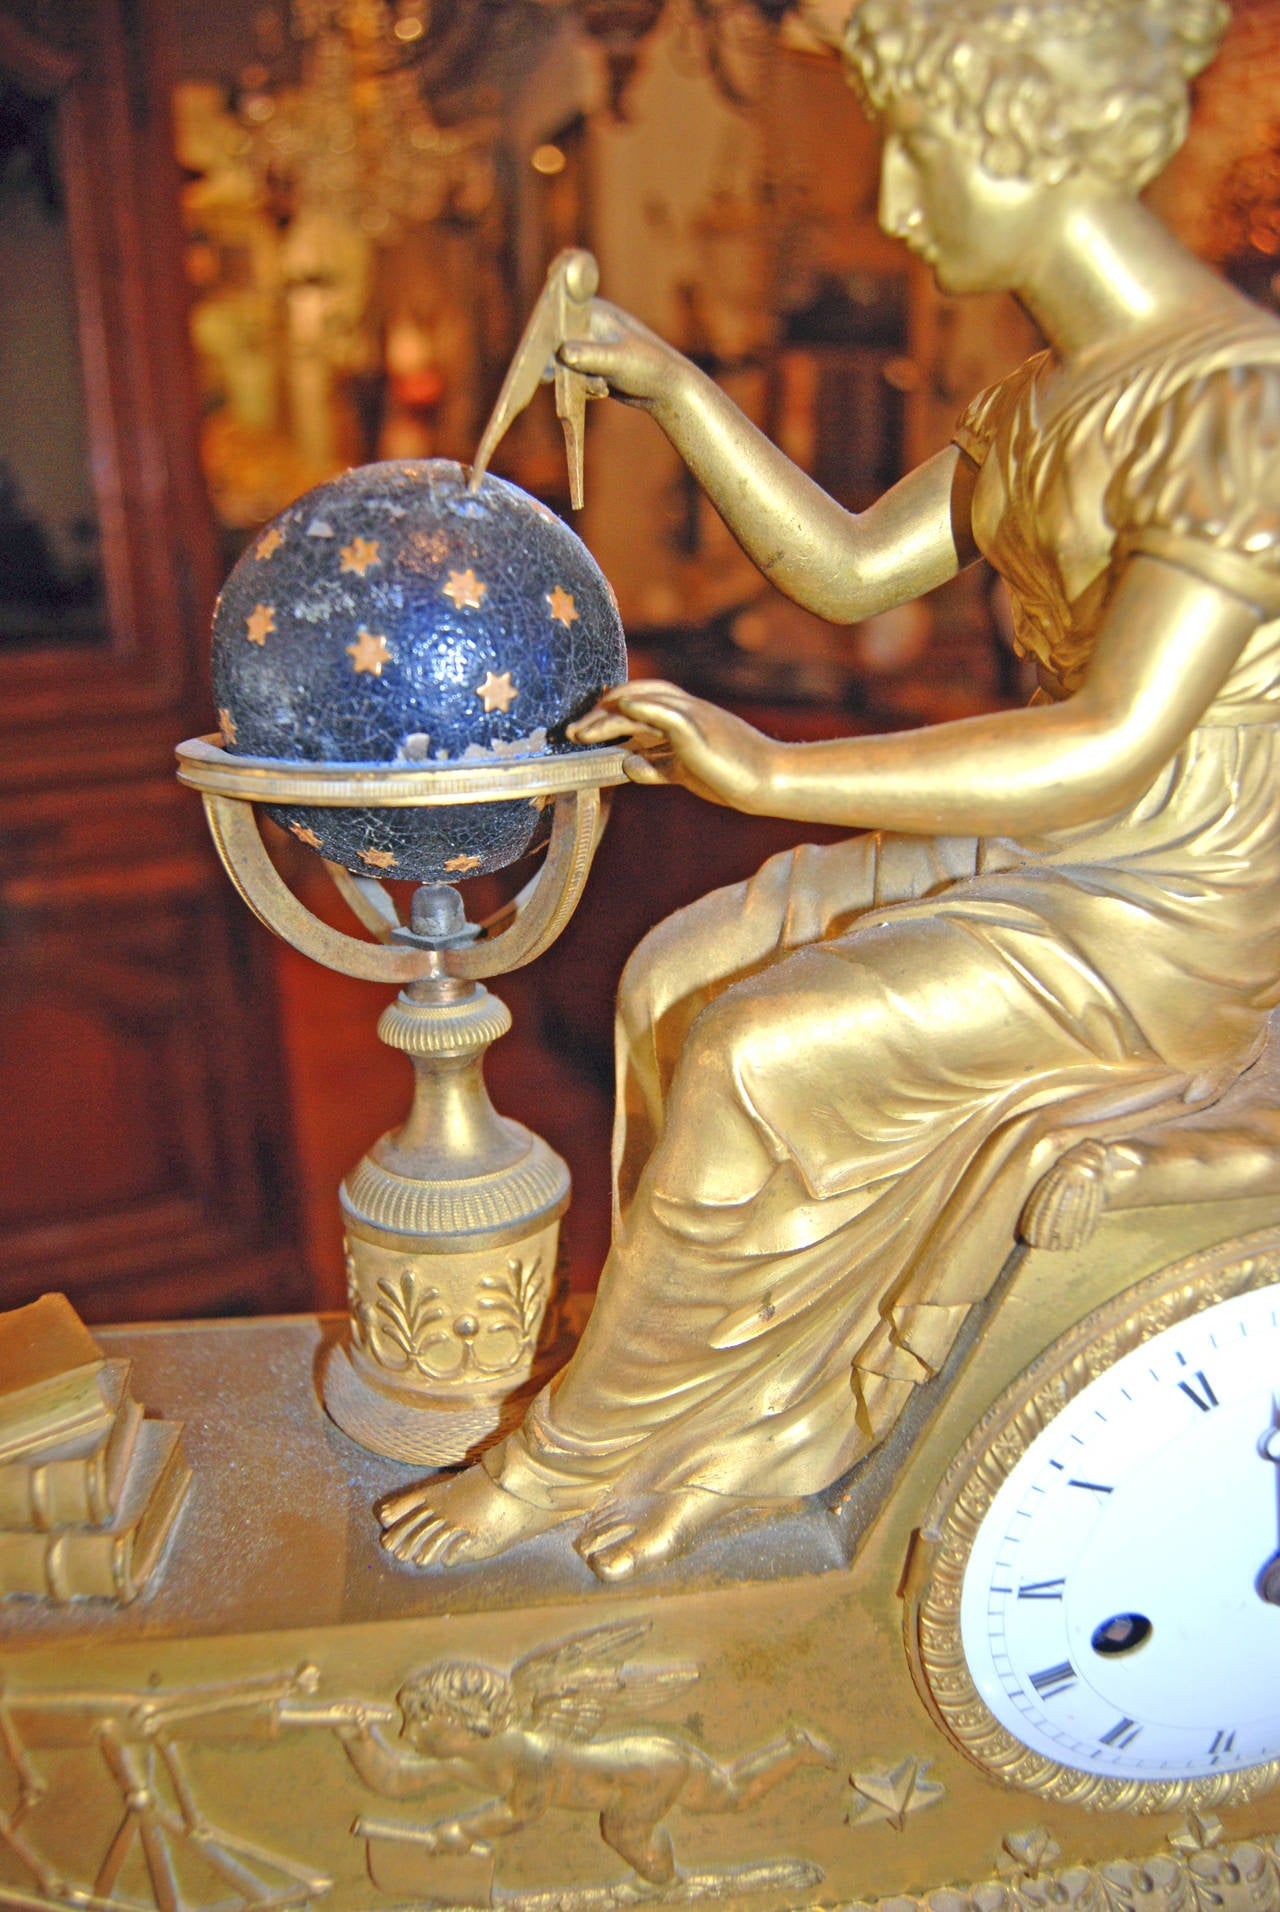 Beautifully chased bronze doré clock depicting the Goddess Urania with the symbols of Astronomy.